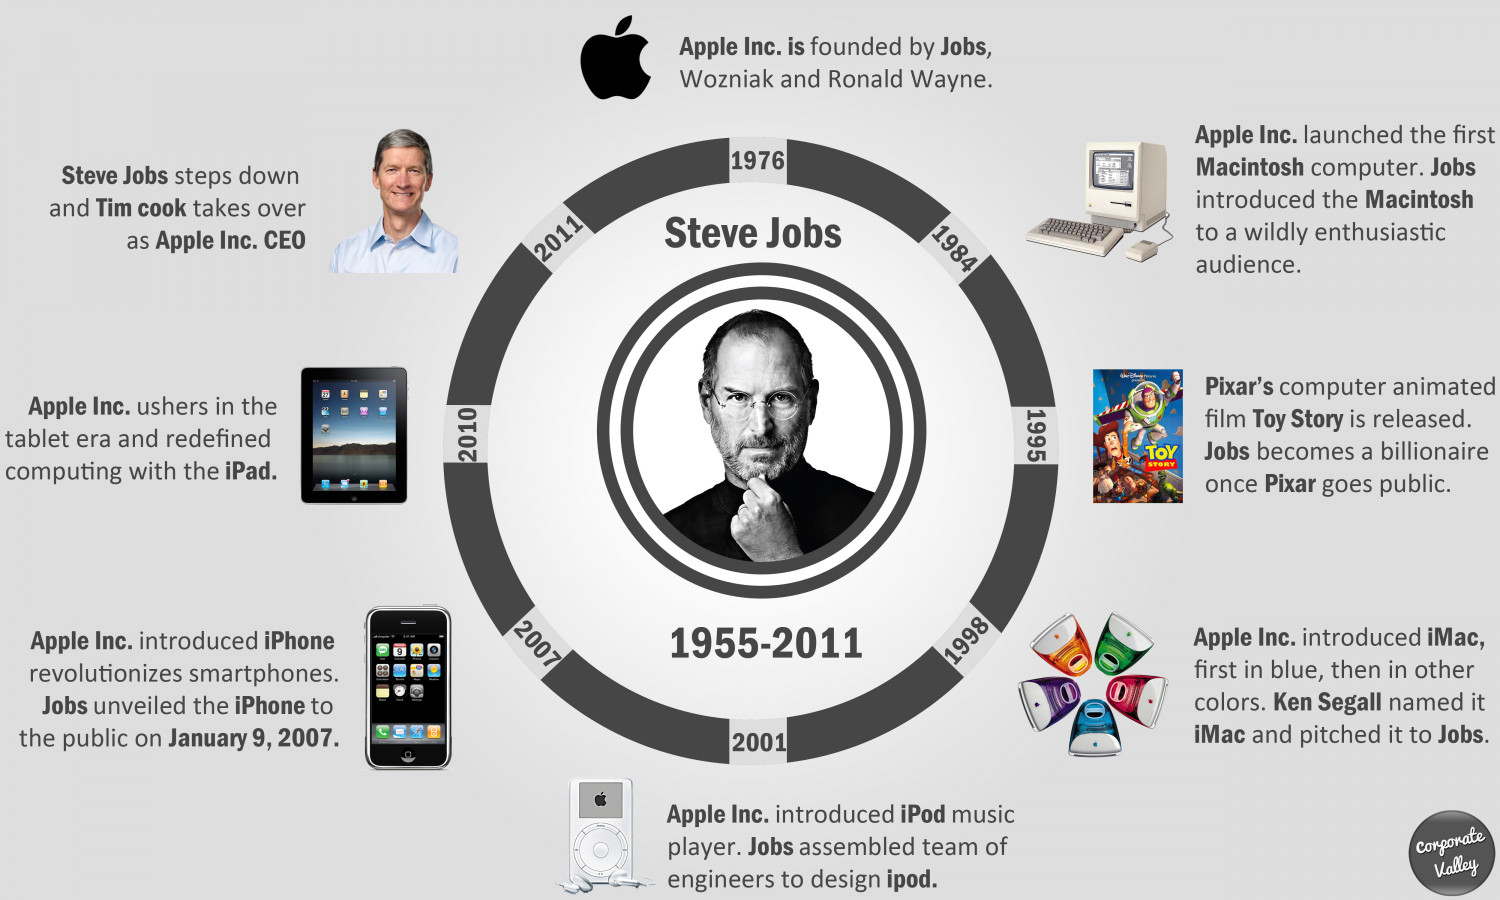 Steve jobs - The lost legend's journey Infographic